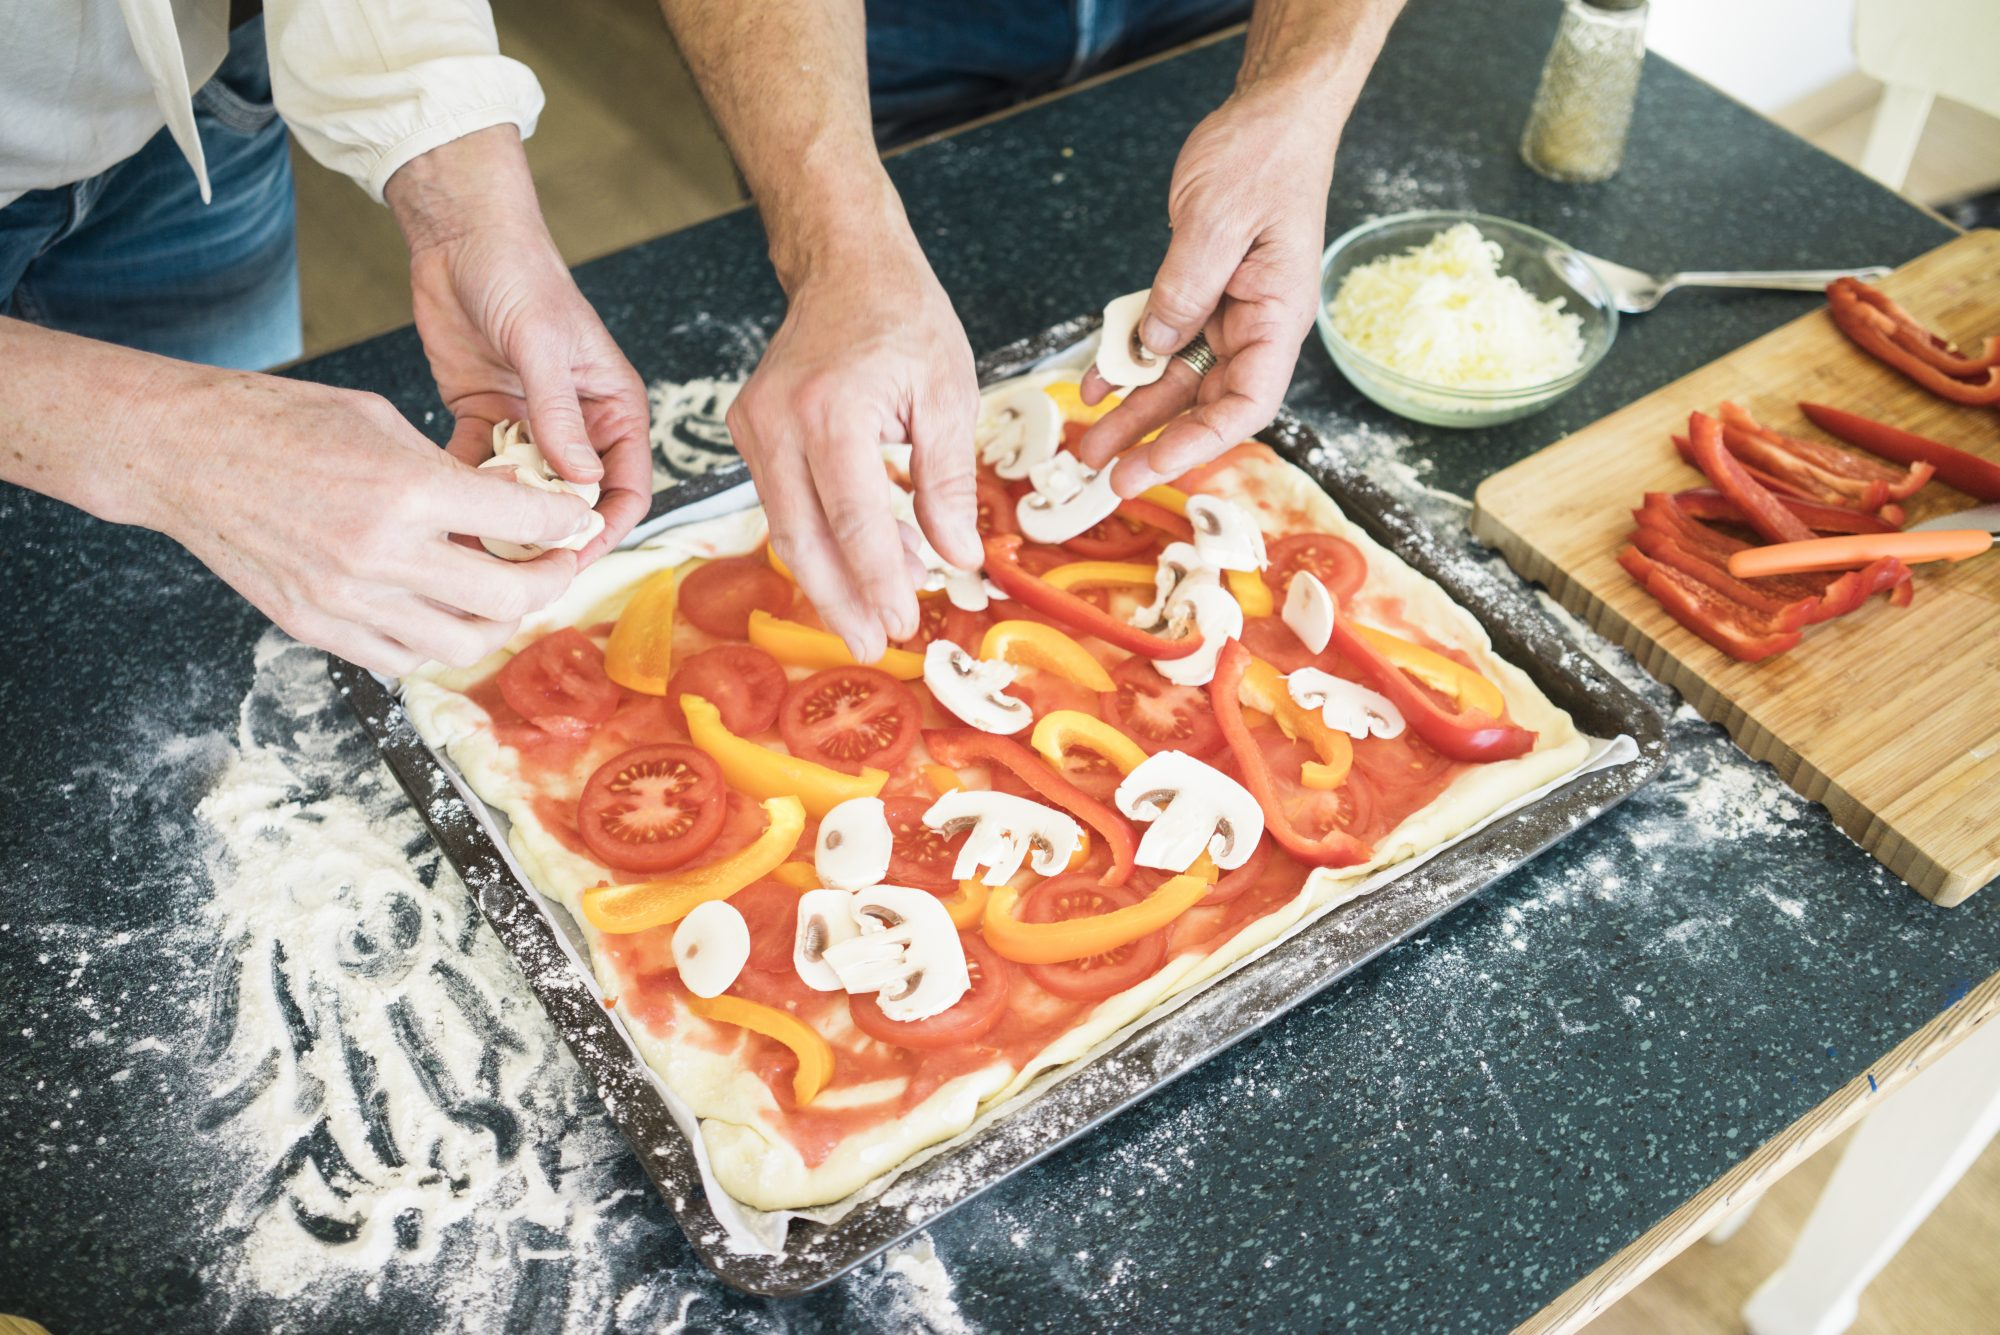 Close-up of couple preparing a pizza in kitchen at home